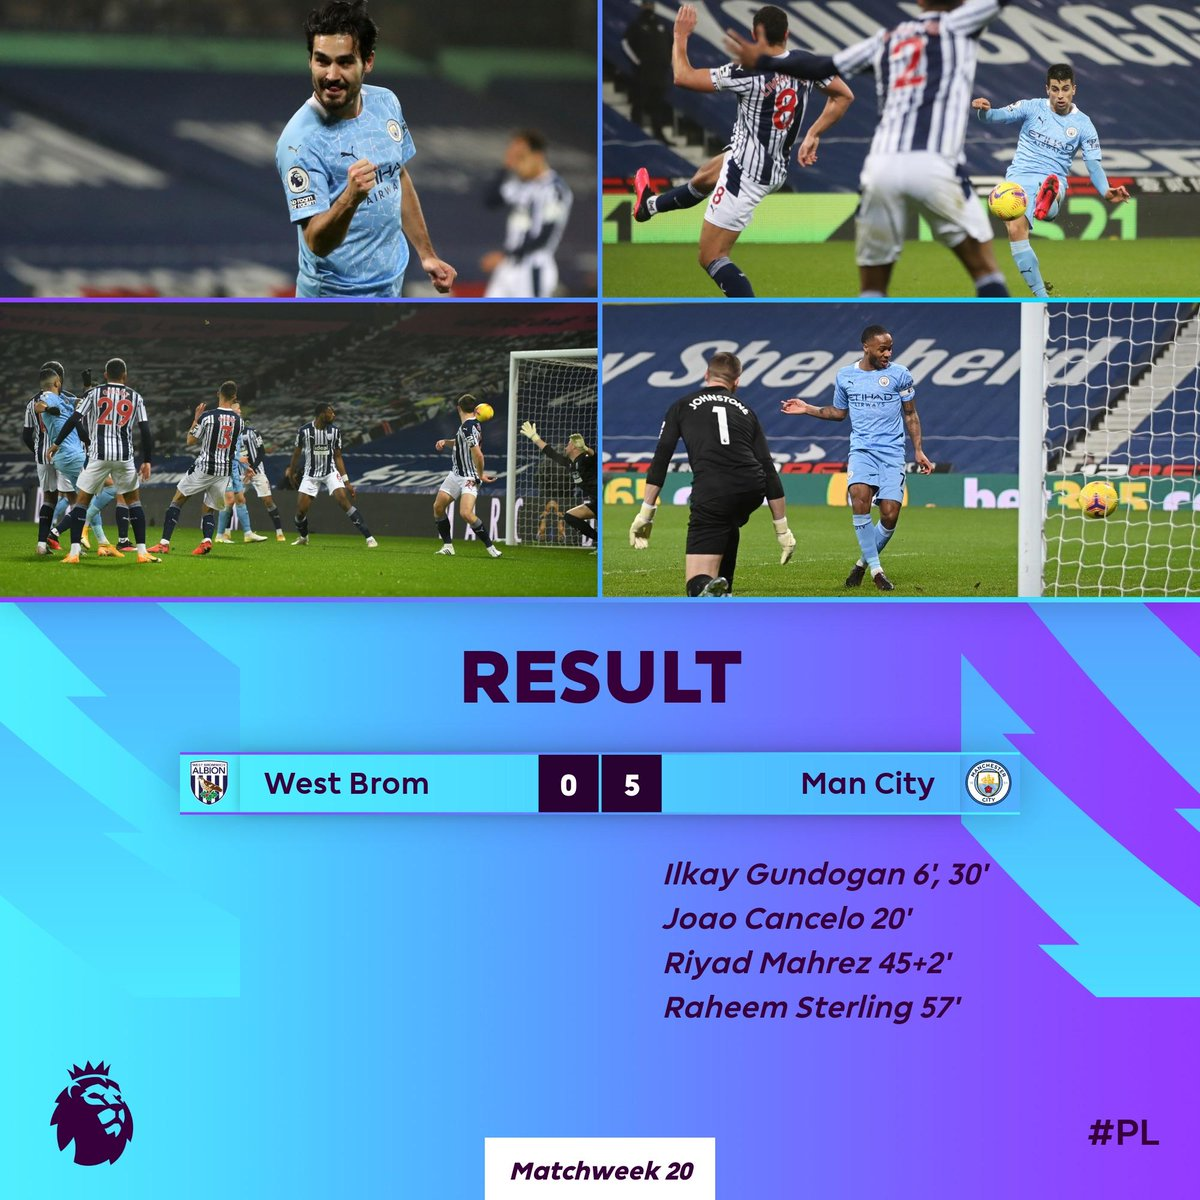 Man City go top of the #PL with an emphatic win at The Hawthorns  #WBAMCI